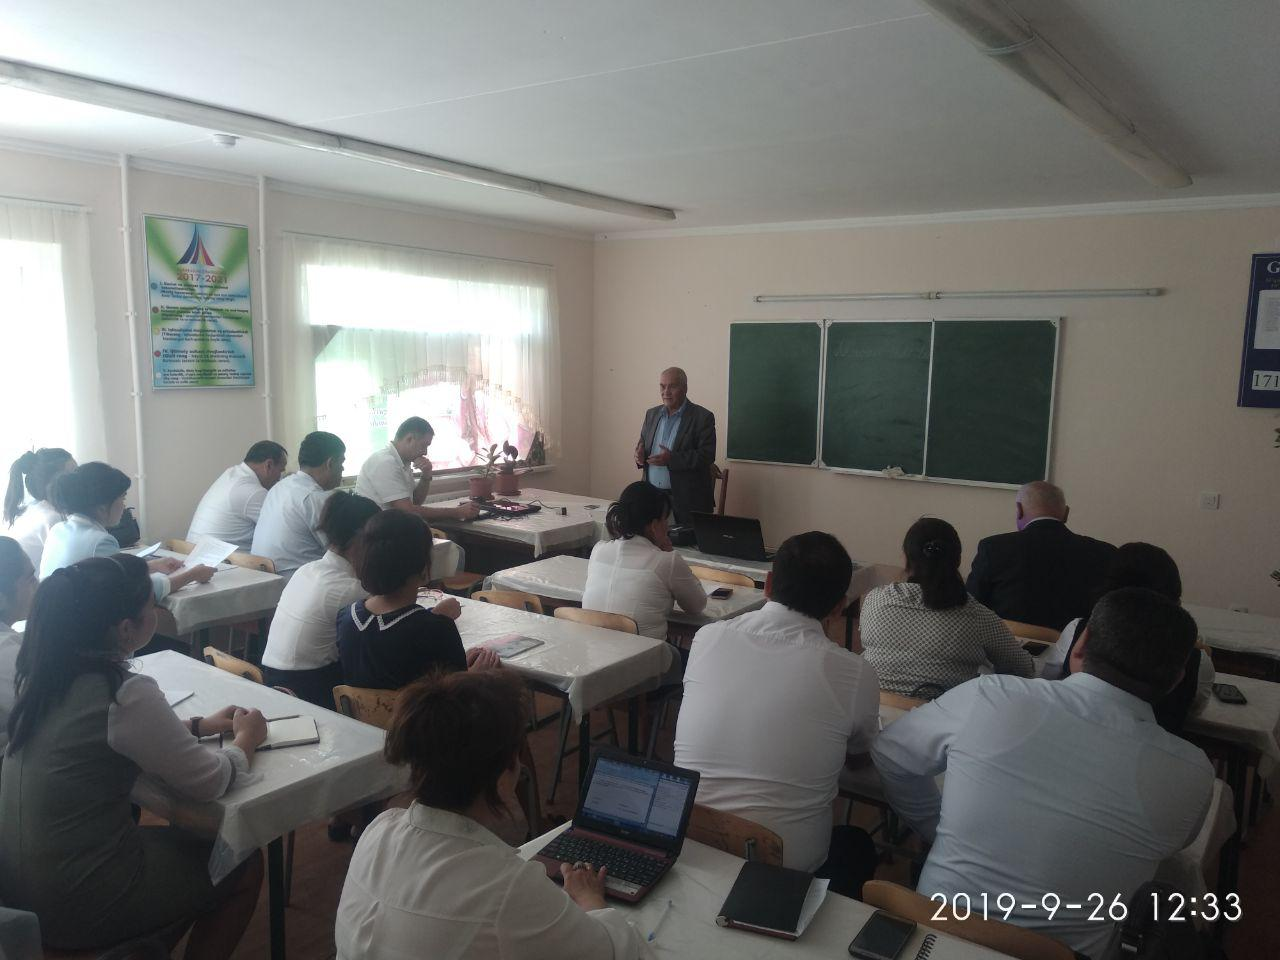 On September 26, 2013 the scientific-theoretical seminar of the chair of the Uzbek language was held